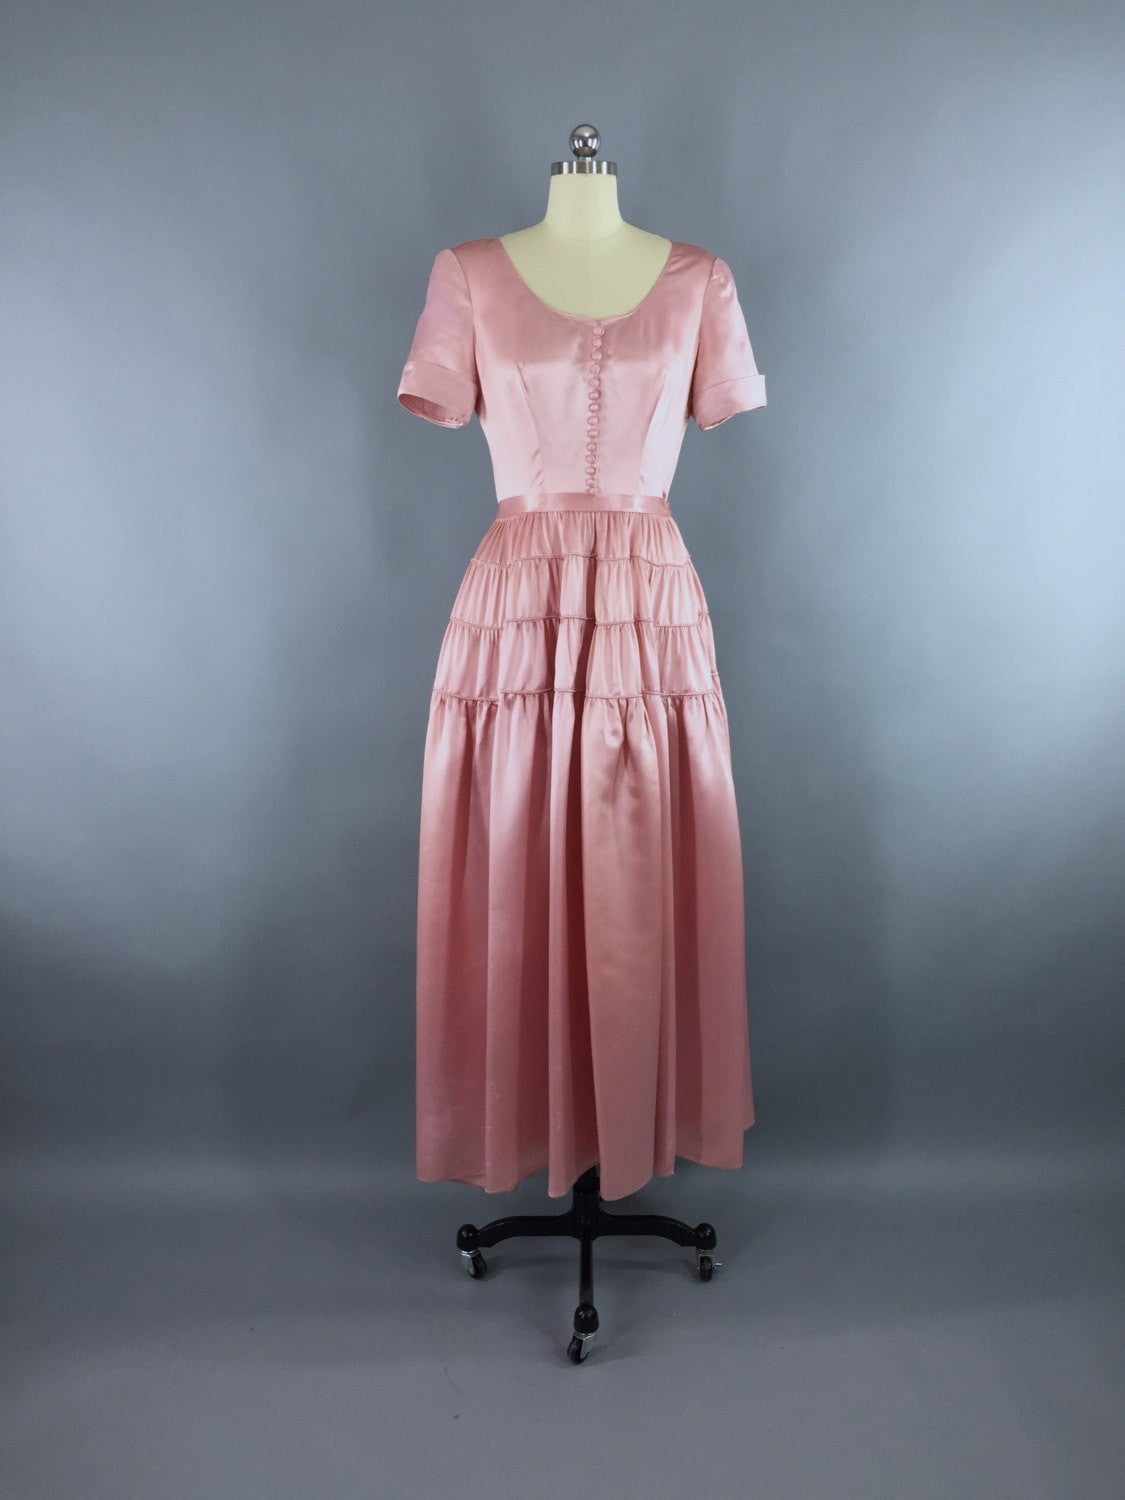 Vintage 1930s-1940s Satin Gown / Pink Maxi Dress Dress ThisBlueBird